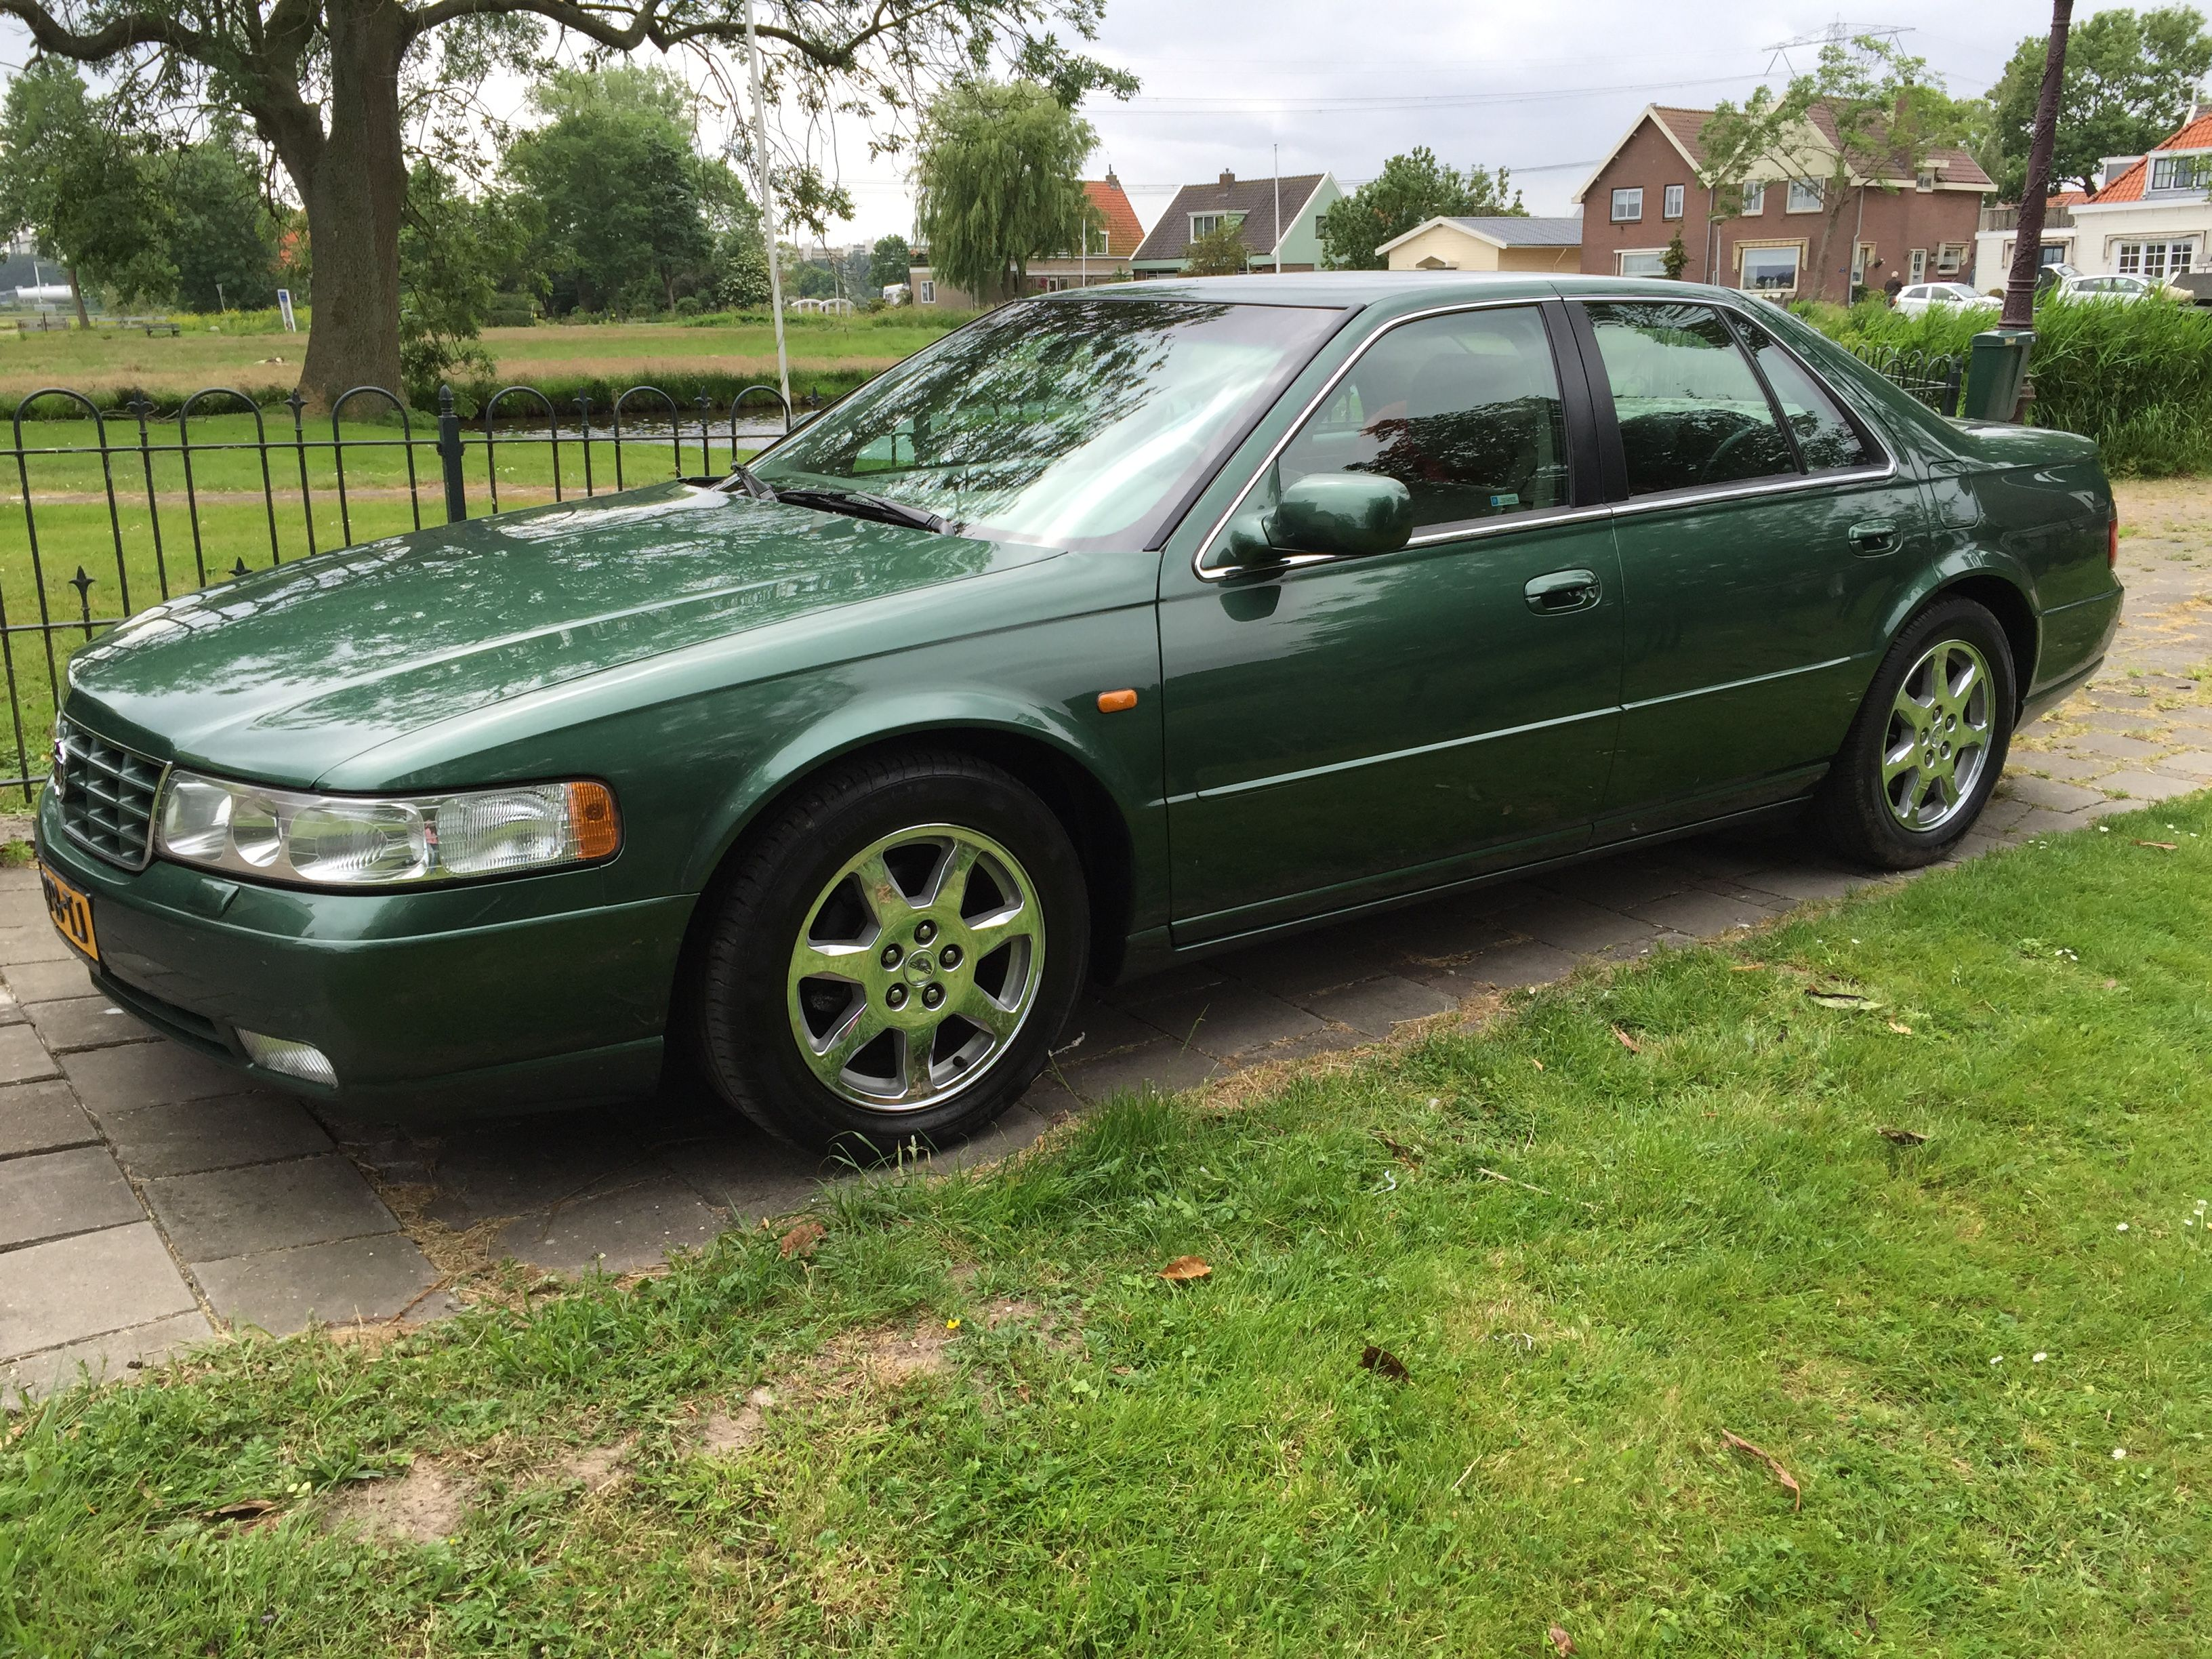 This Cadillac Seville / STS, 2004, is my latest. I bought this car